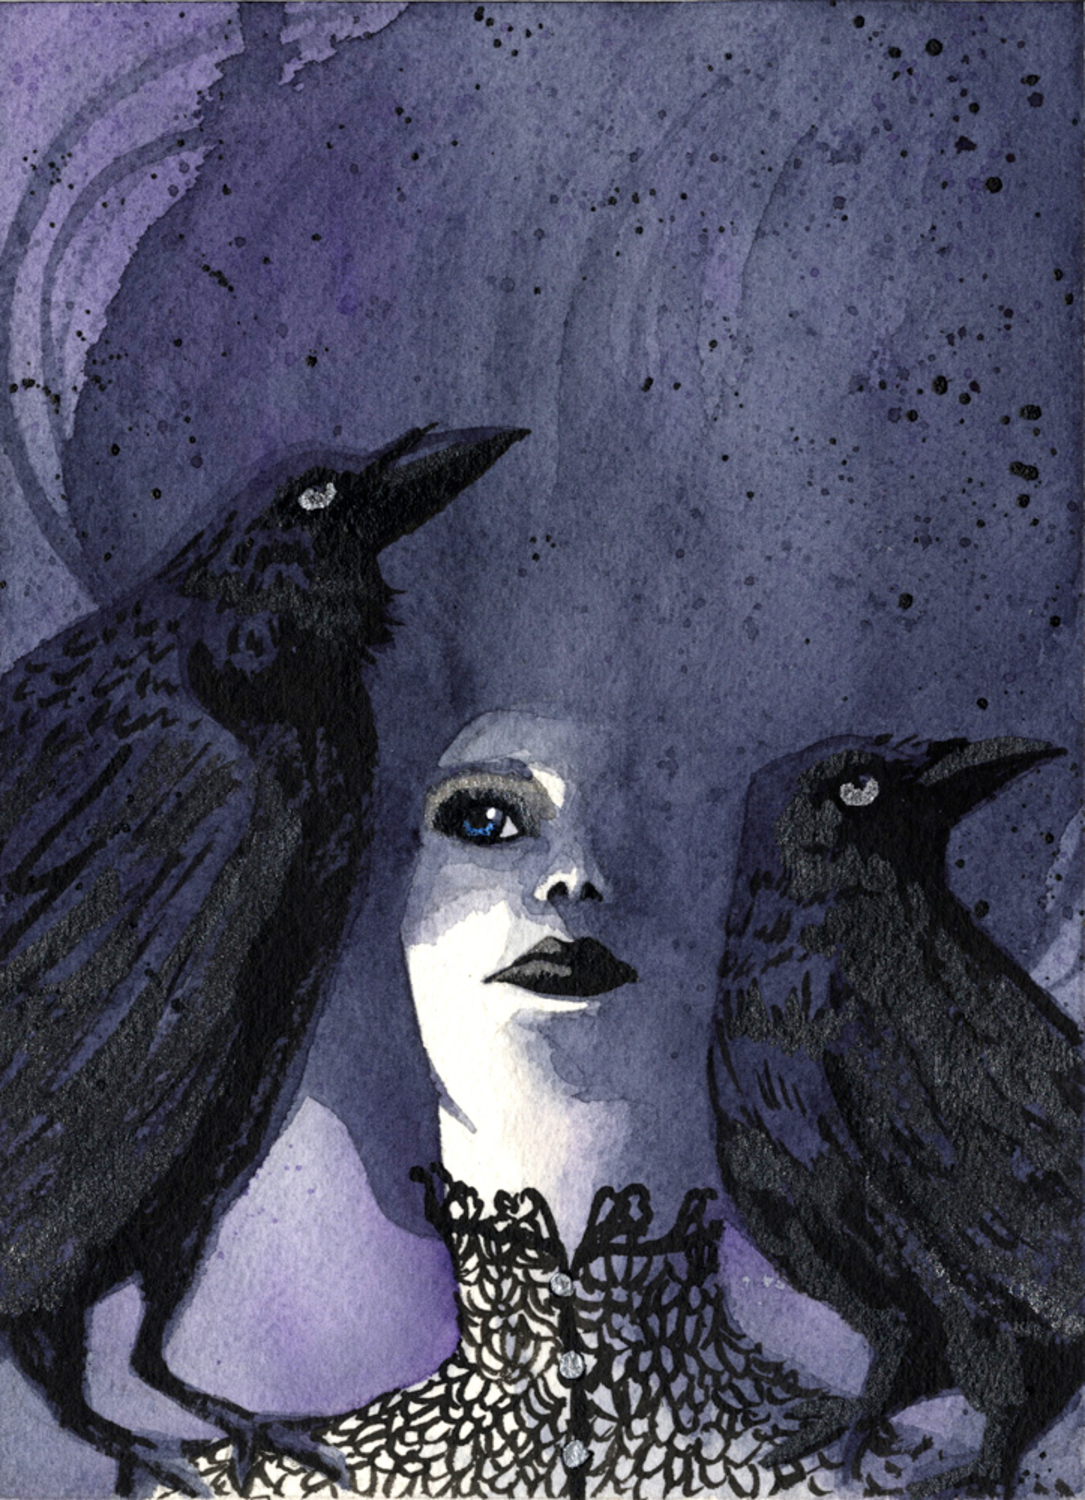 A Conspiracy of Ravens Artwork by Melisa Des Rosiers